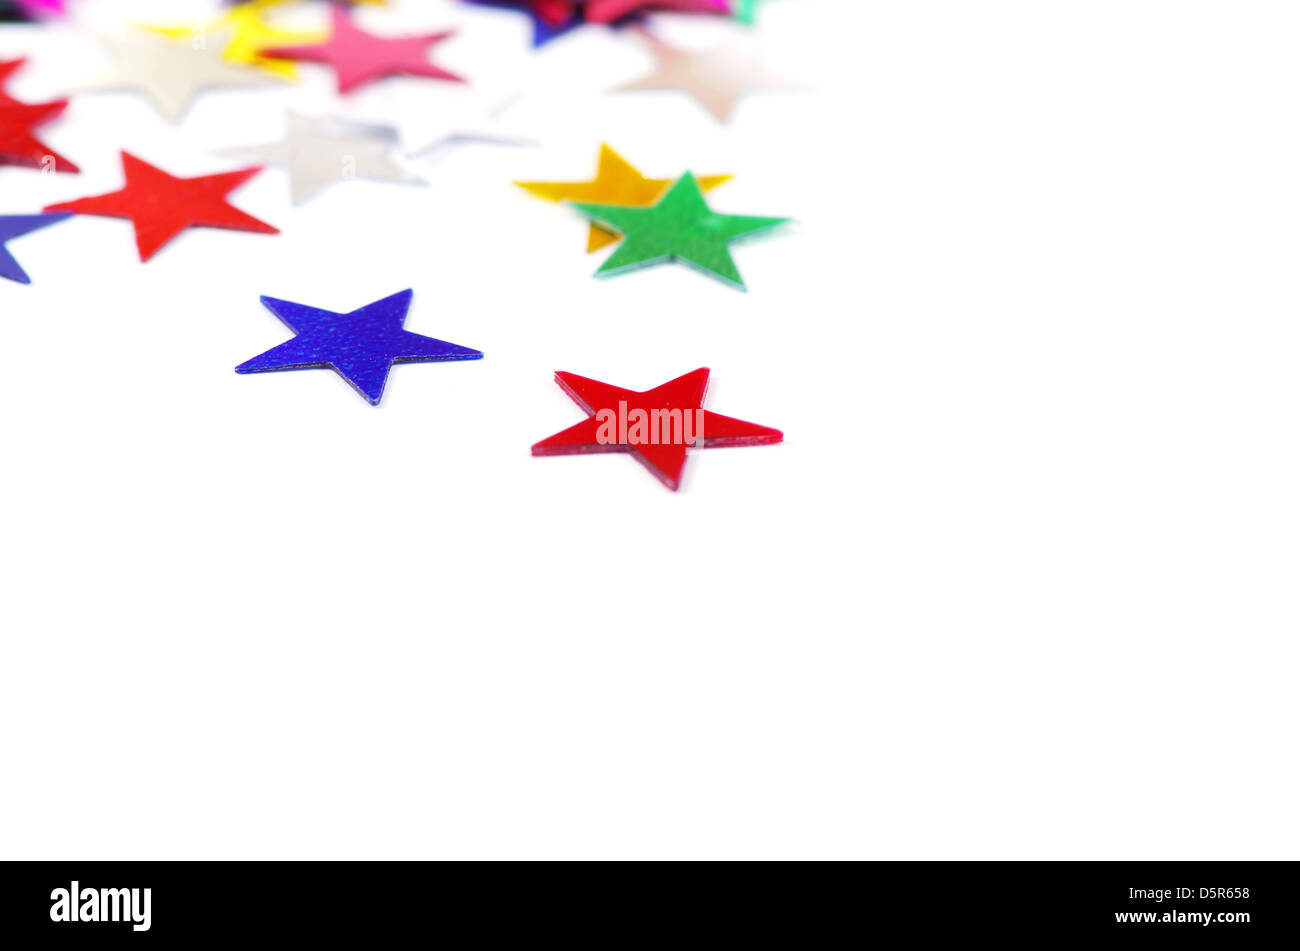 Christmas decoration of colored confetti stars against white background Stock Photo